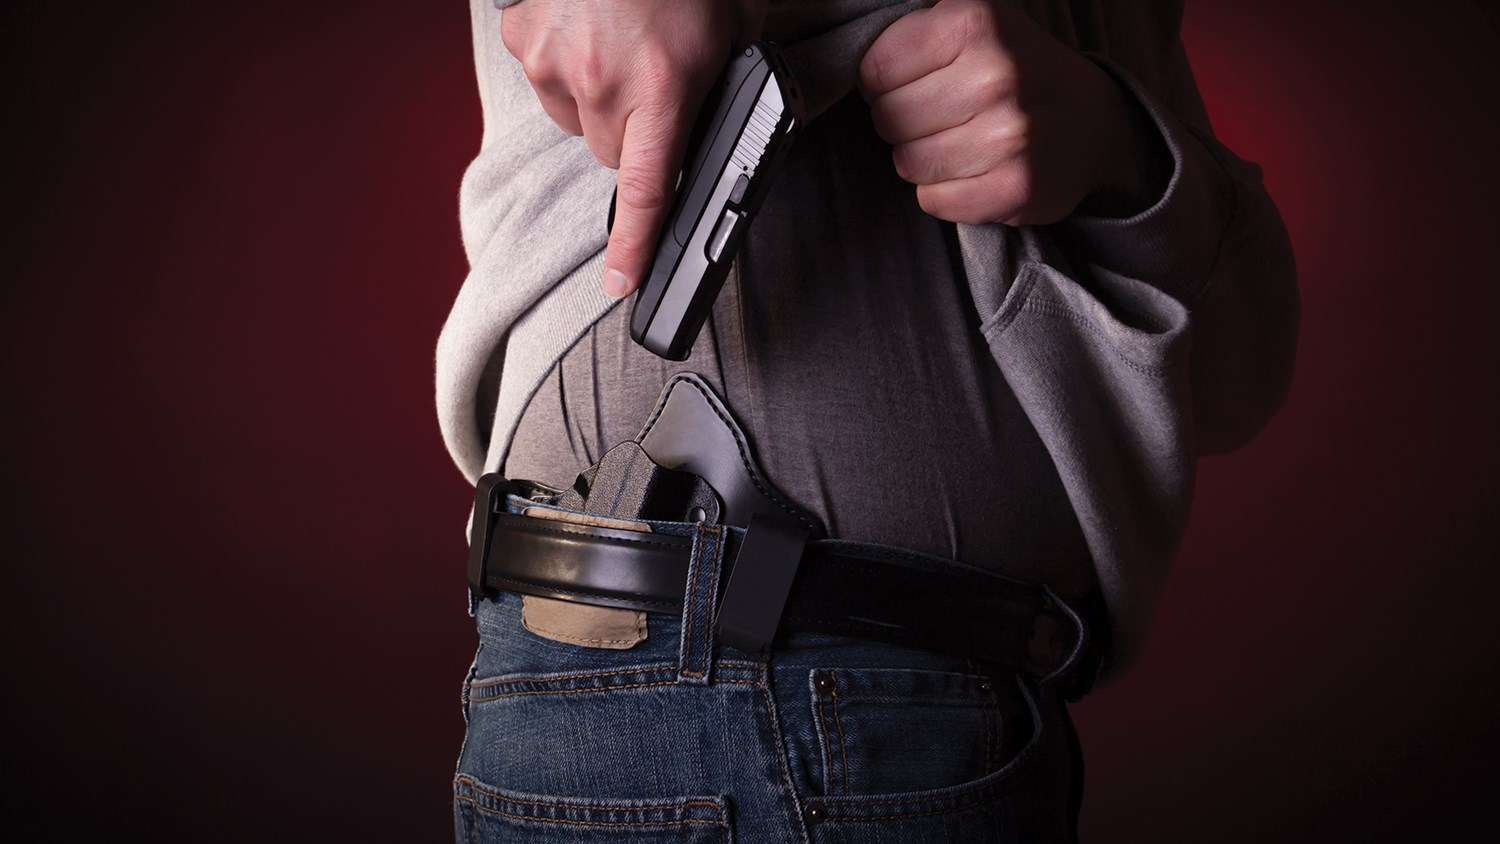 ILA | Iowa: Constitutional Carry Legislation to be Heard